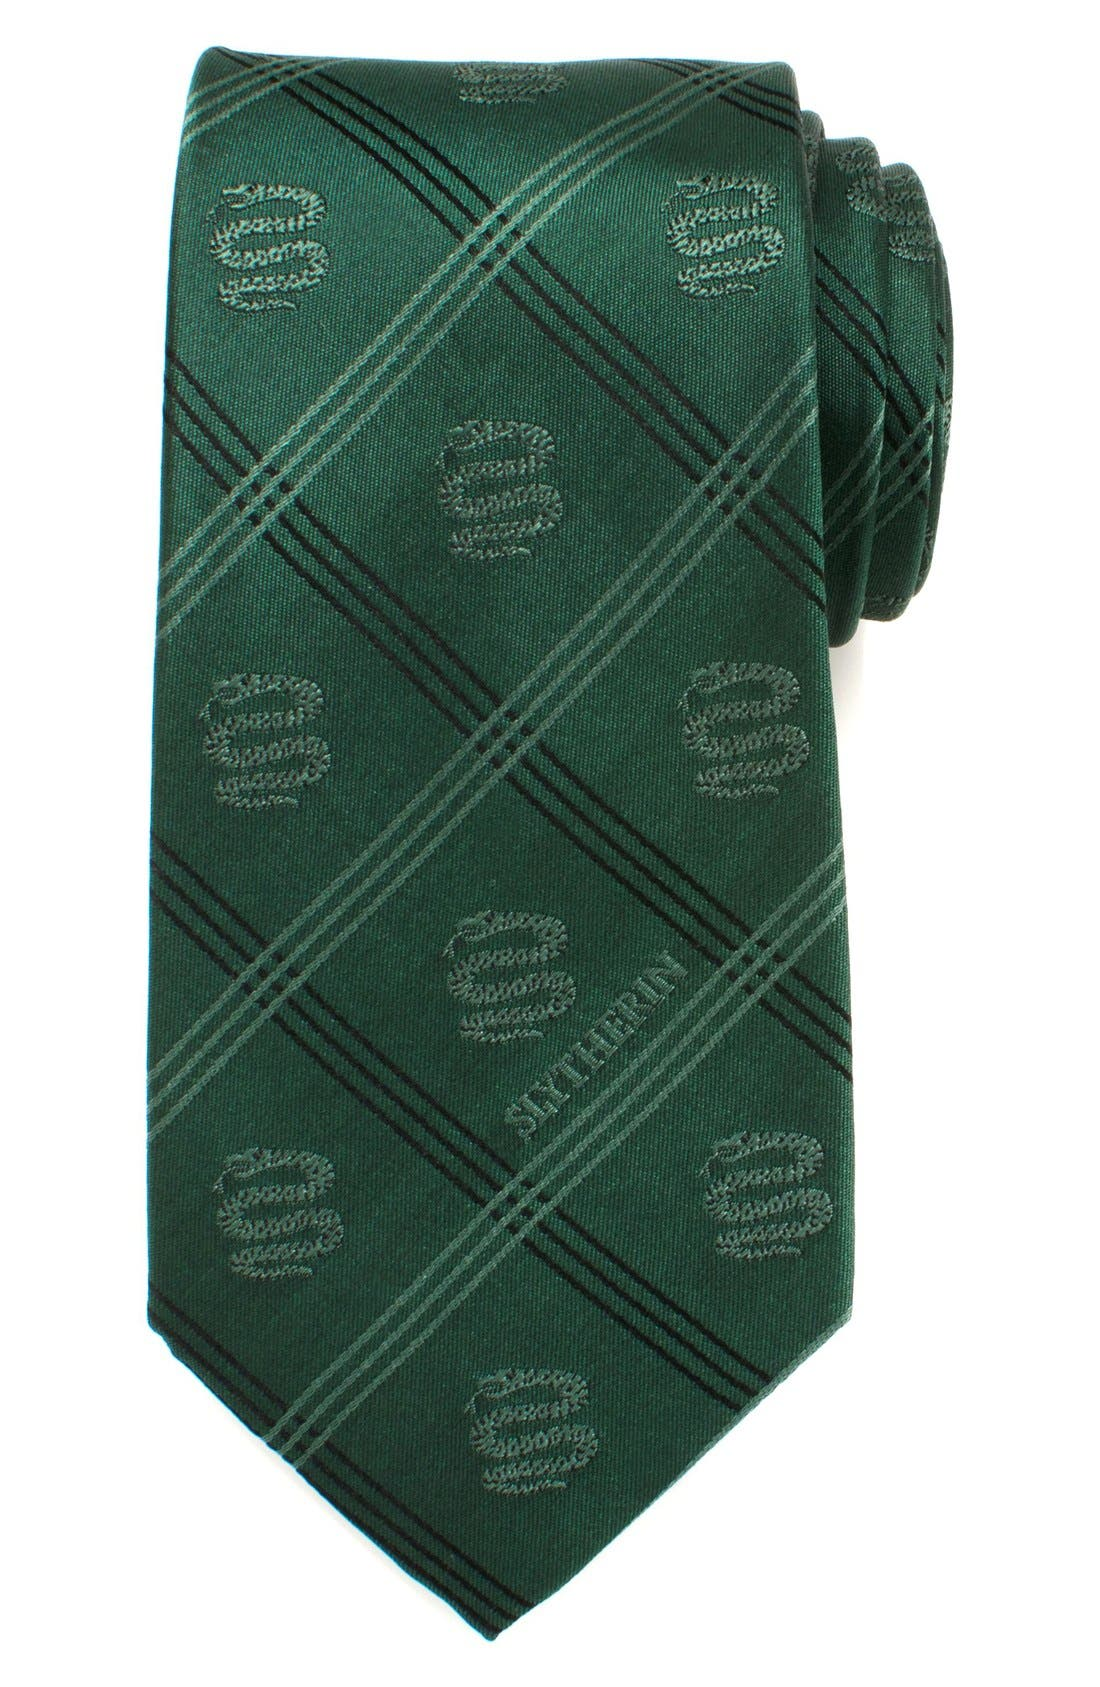 A fun Harry Potter print stamps a subtle novelty tie cut from pure silk. Style Name: Cufflinks, Inc. \\\'slytherin\\\' Silk Tie. Style Number: 5229213. Available in stores.